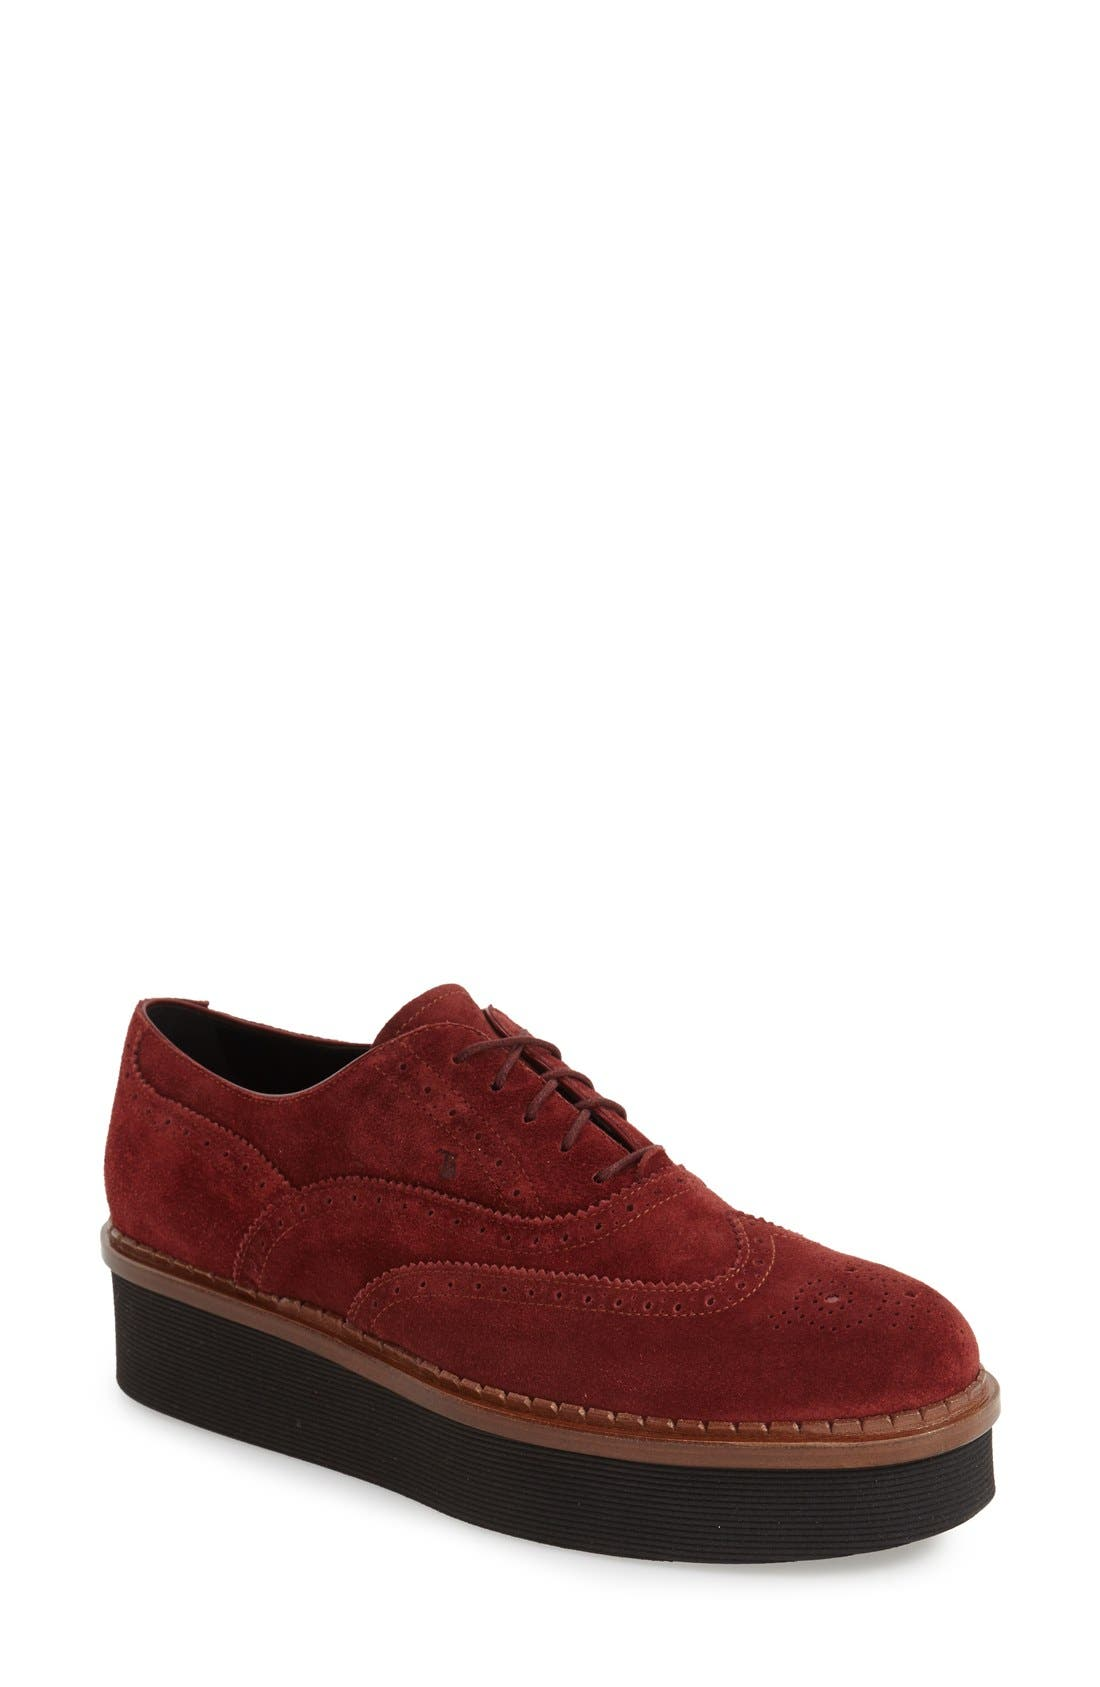 Alternate Image 1 Selected - Tod's 'Lightsole' Creeper Wingtip Oxford (Women) (Nordstrom Exclusive)